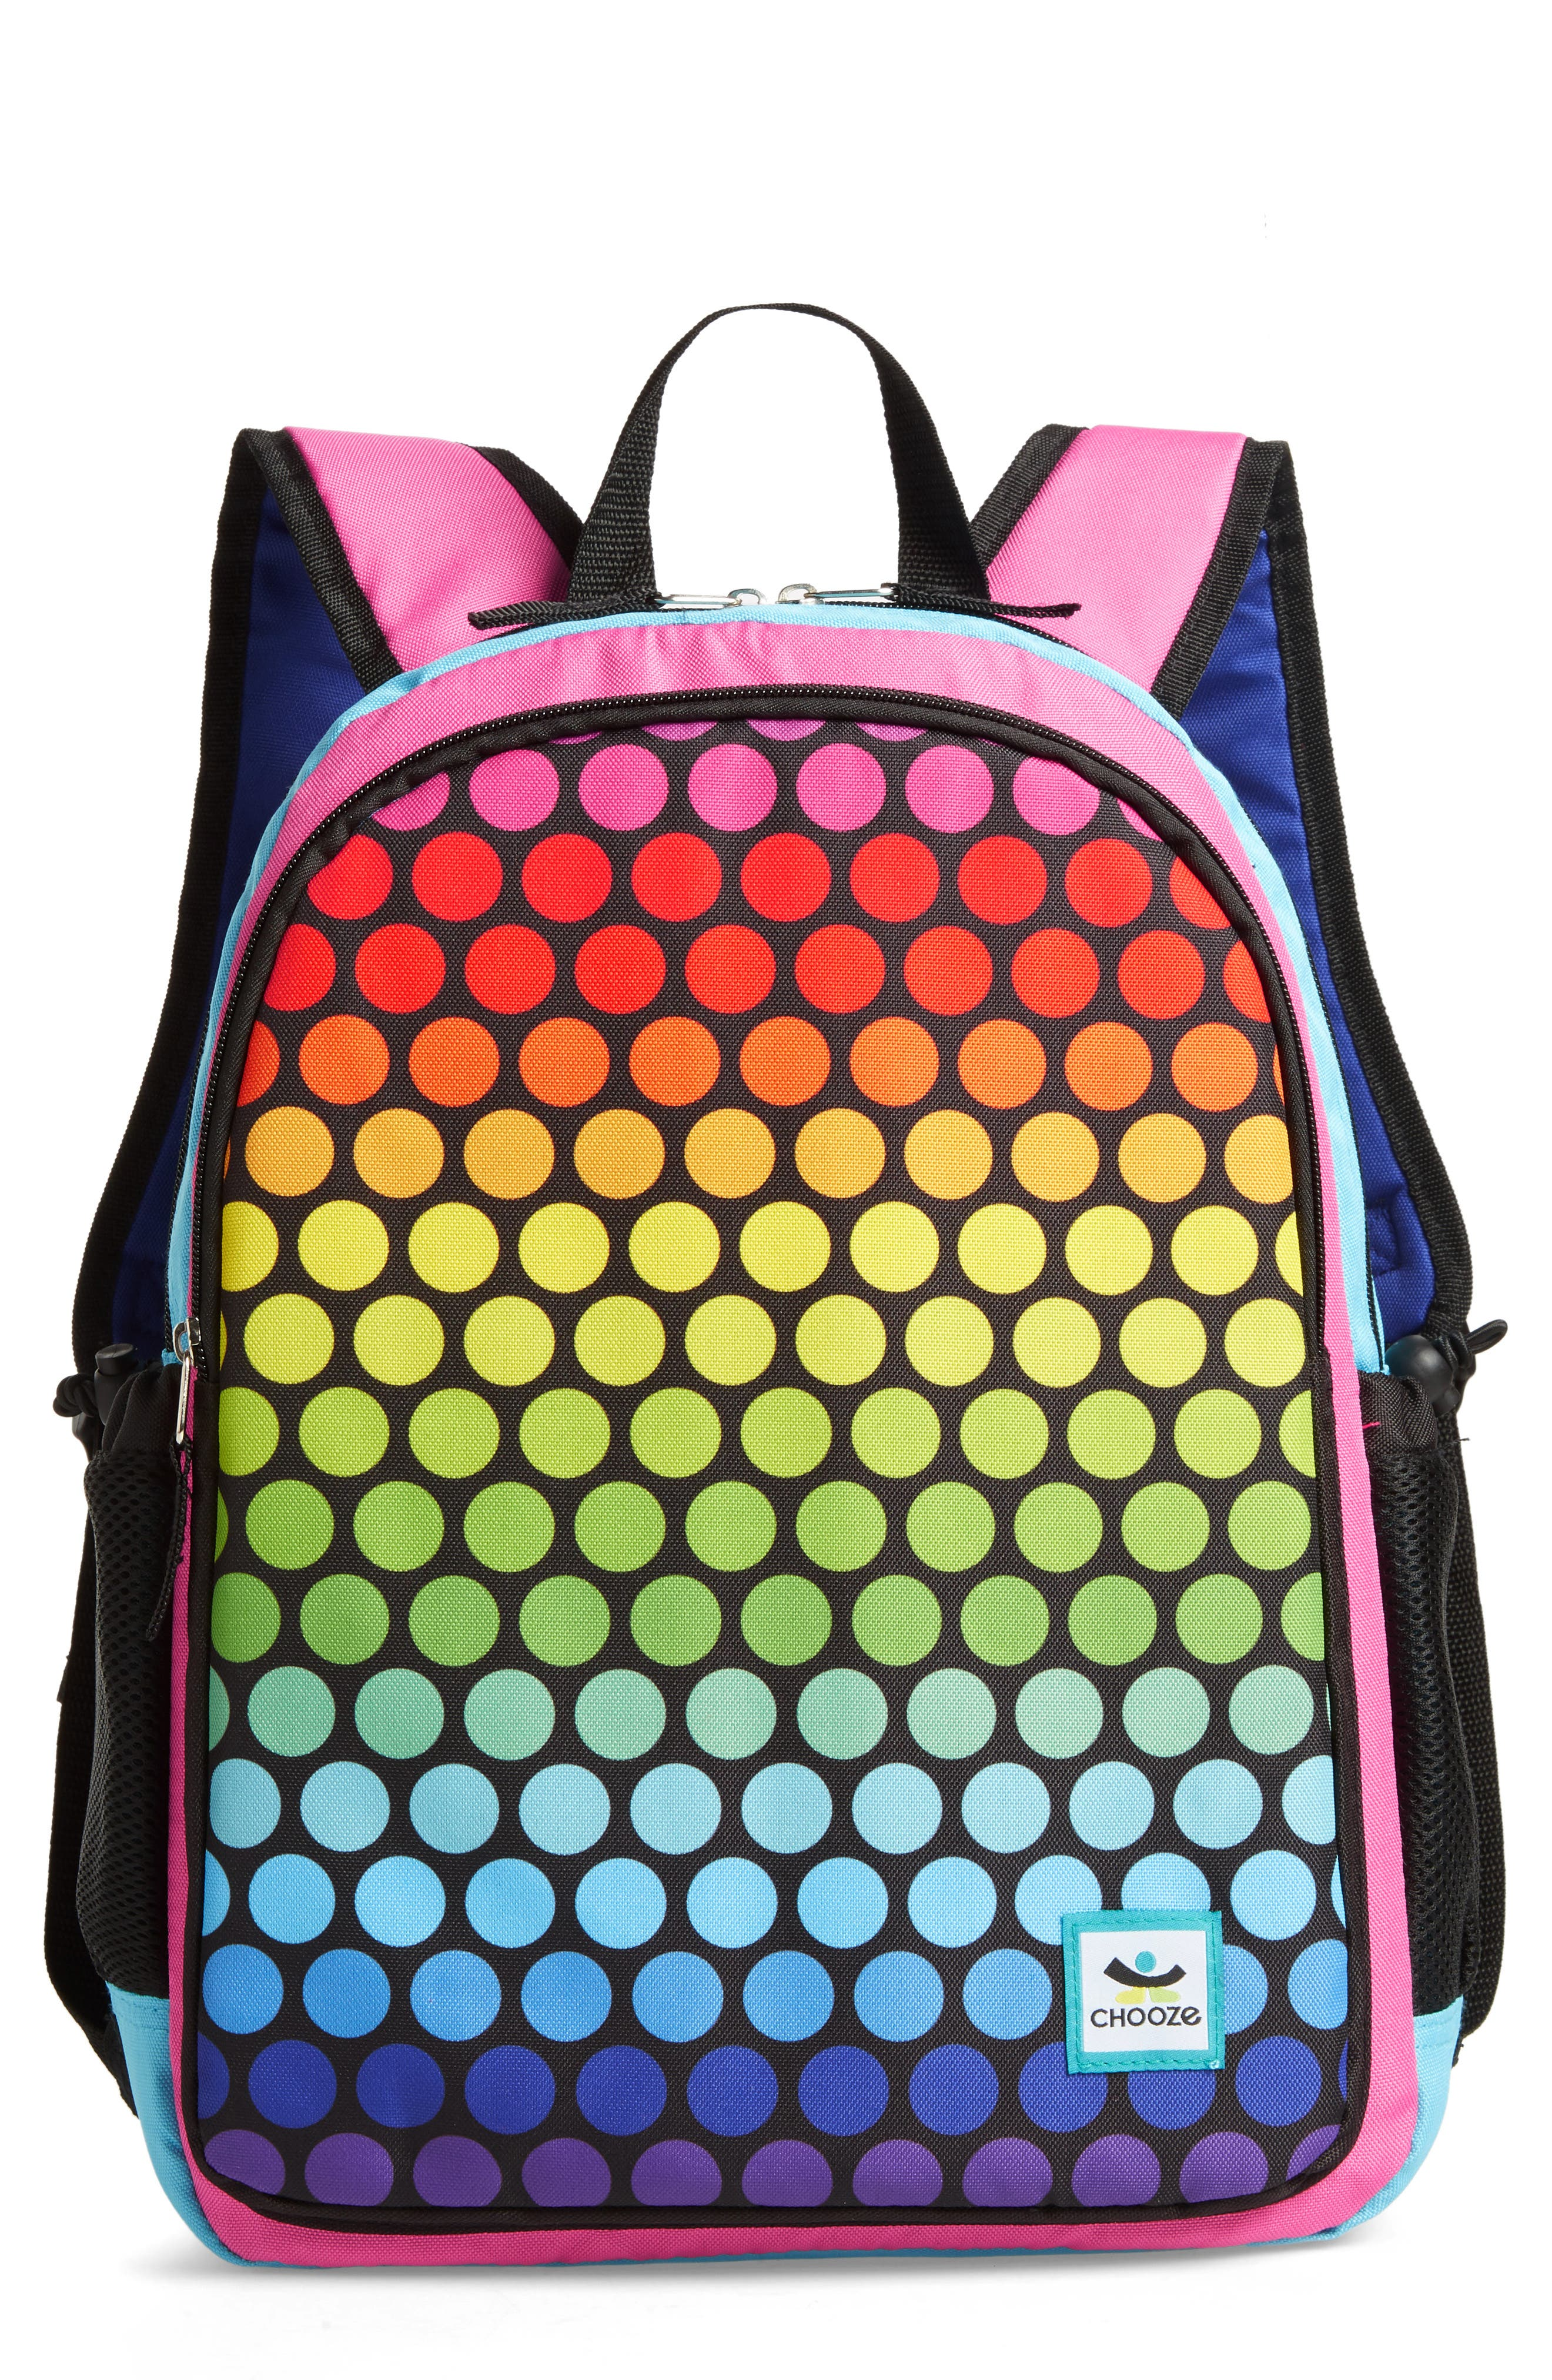 Hue Rainbow Reversible Backpack,                             Main thumbnail 1, color,                             001